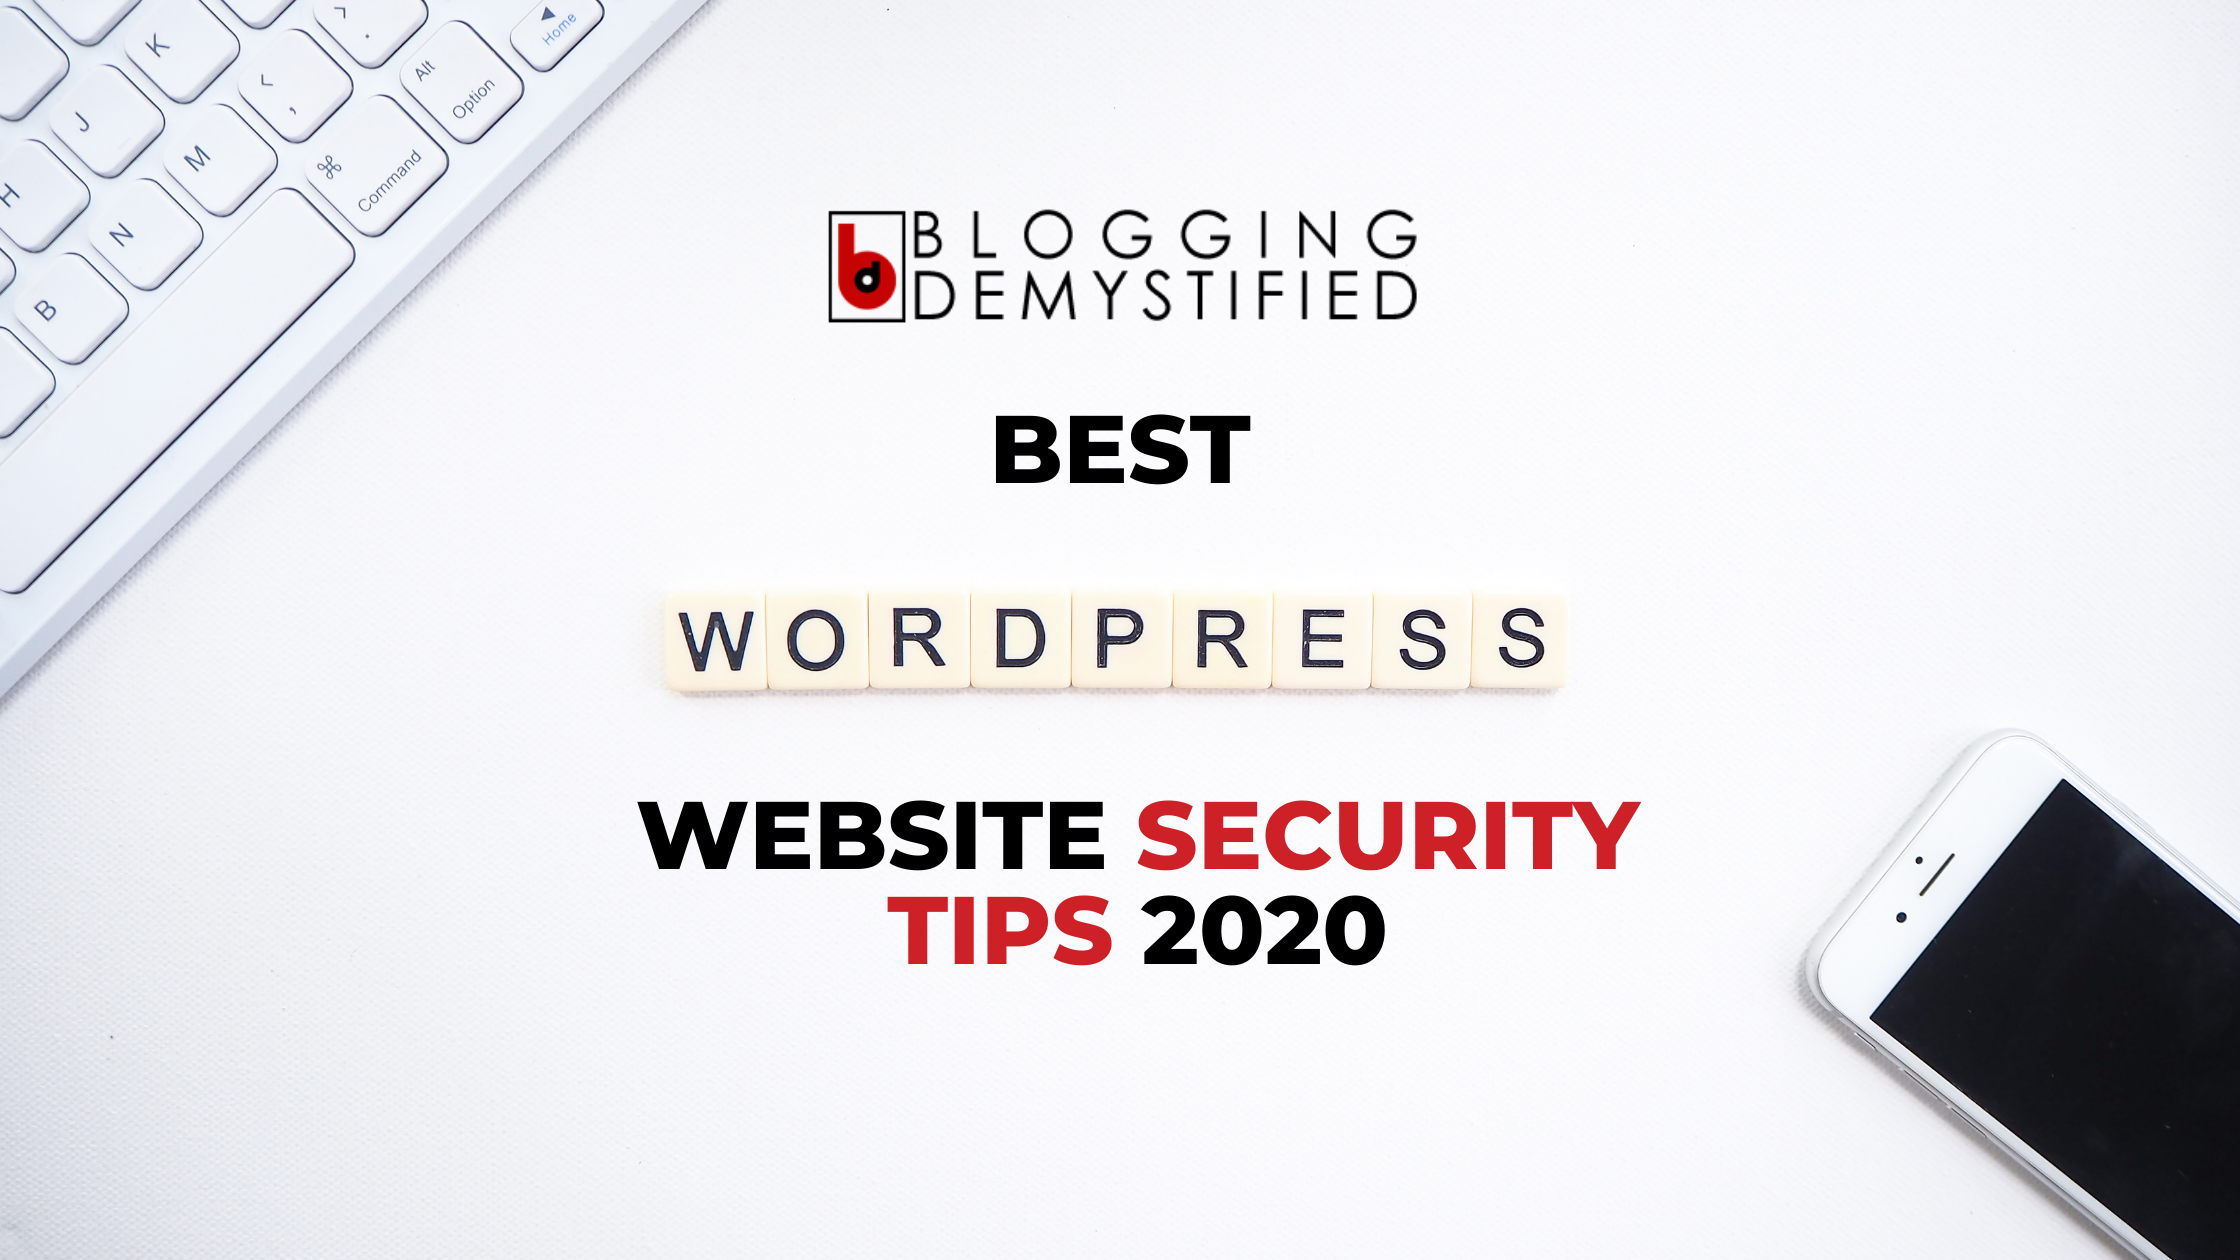 Best WordPress Website Security Tips 2020